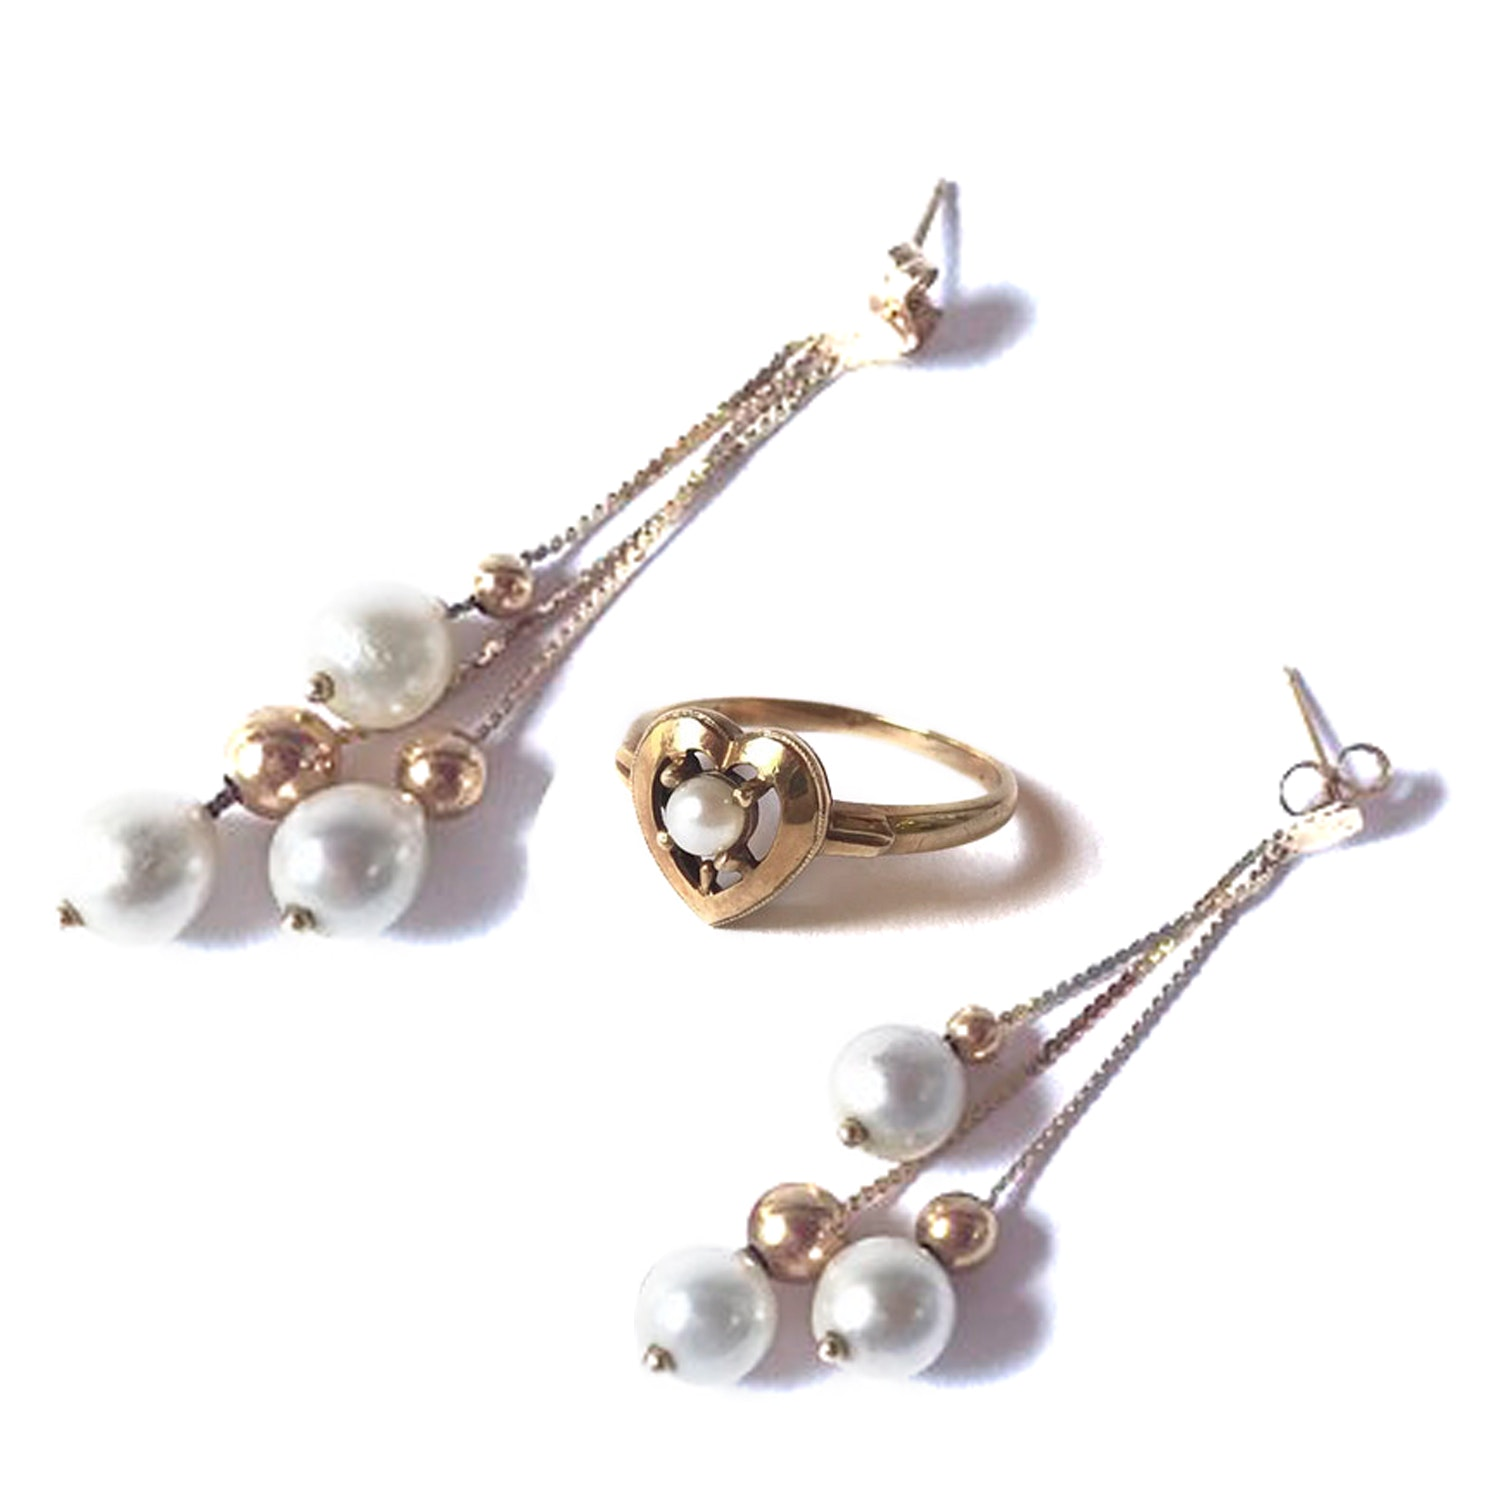 10K Yellow Gold and Pearl Jewelry